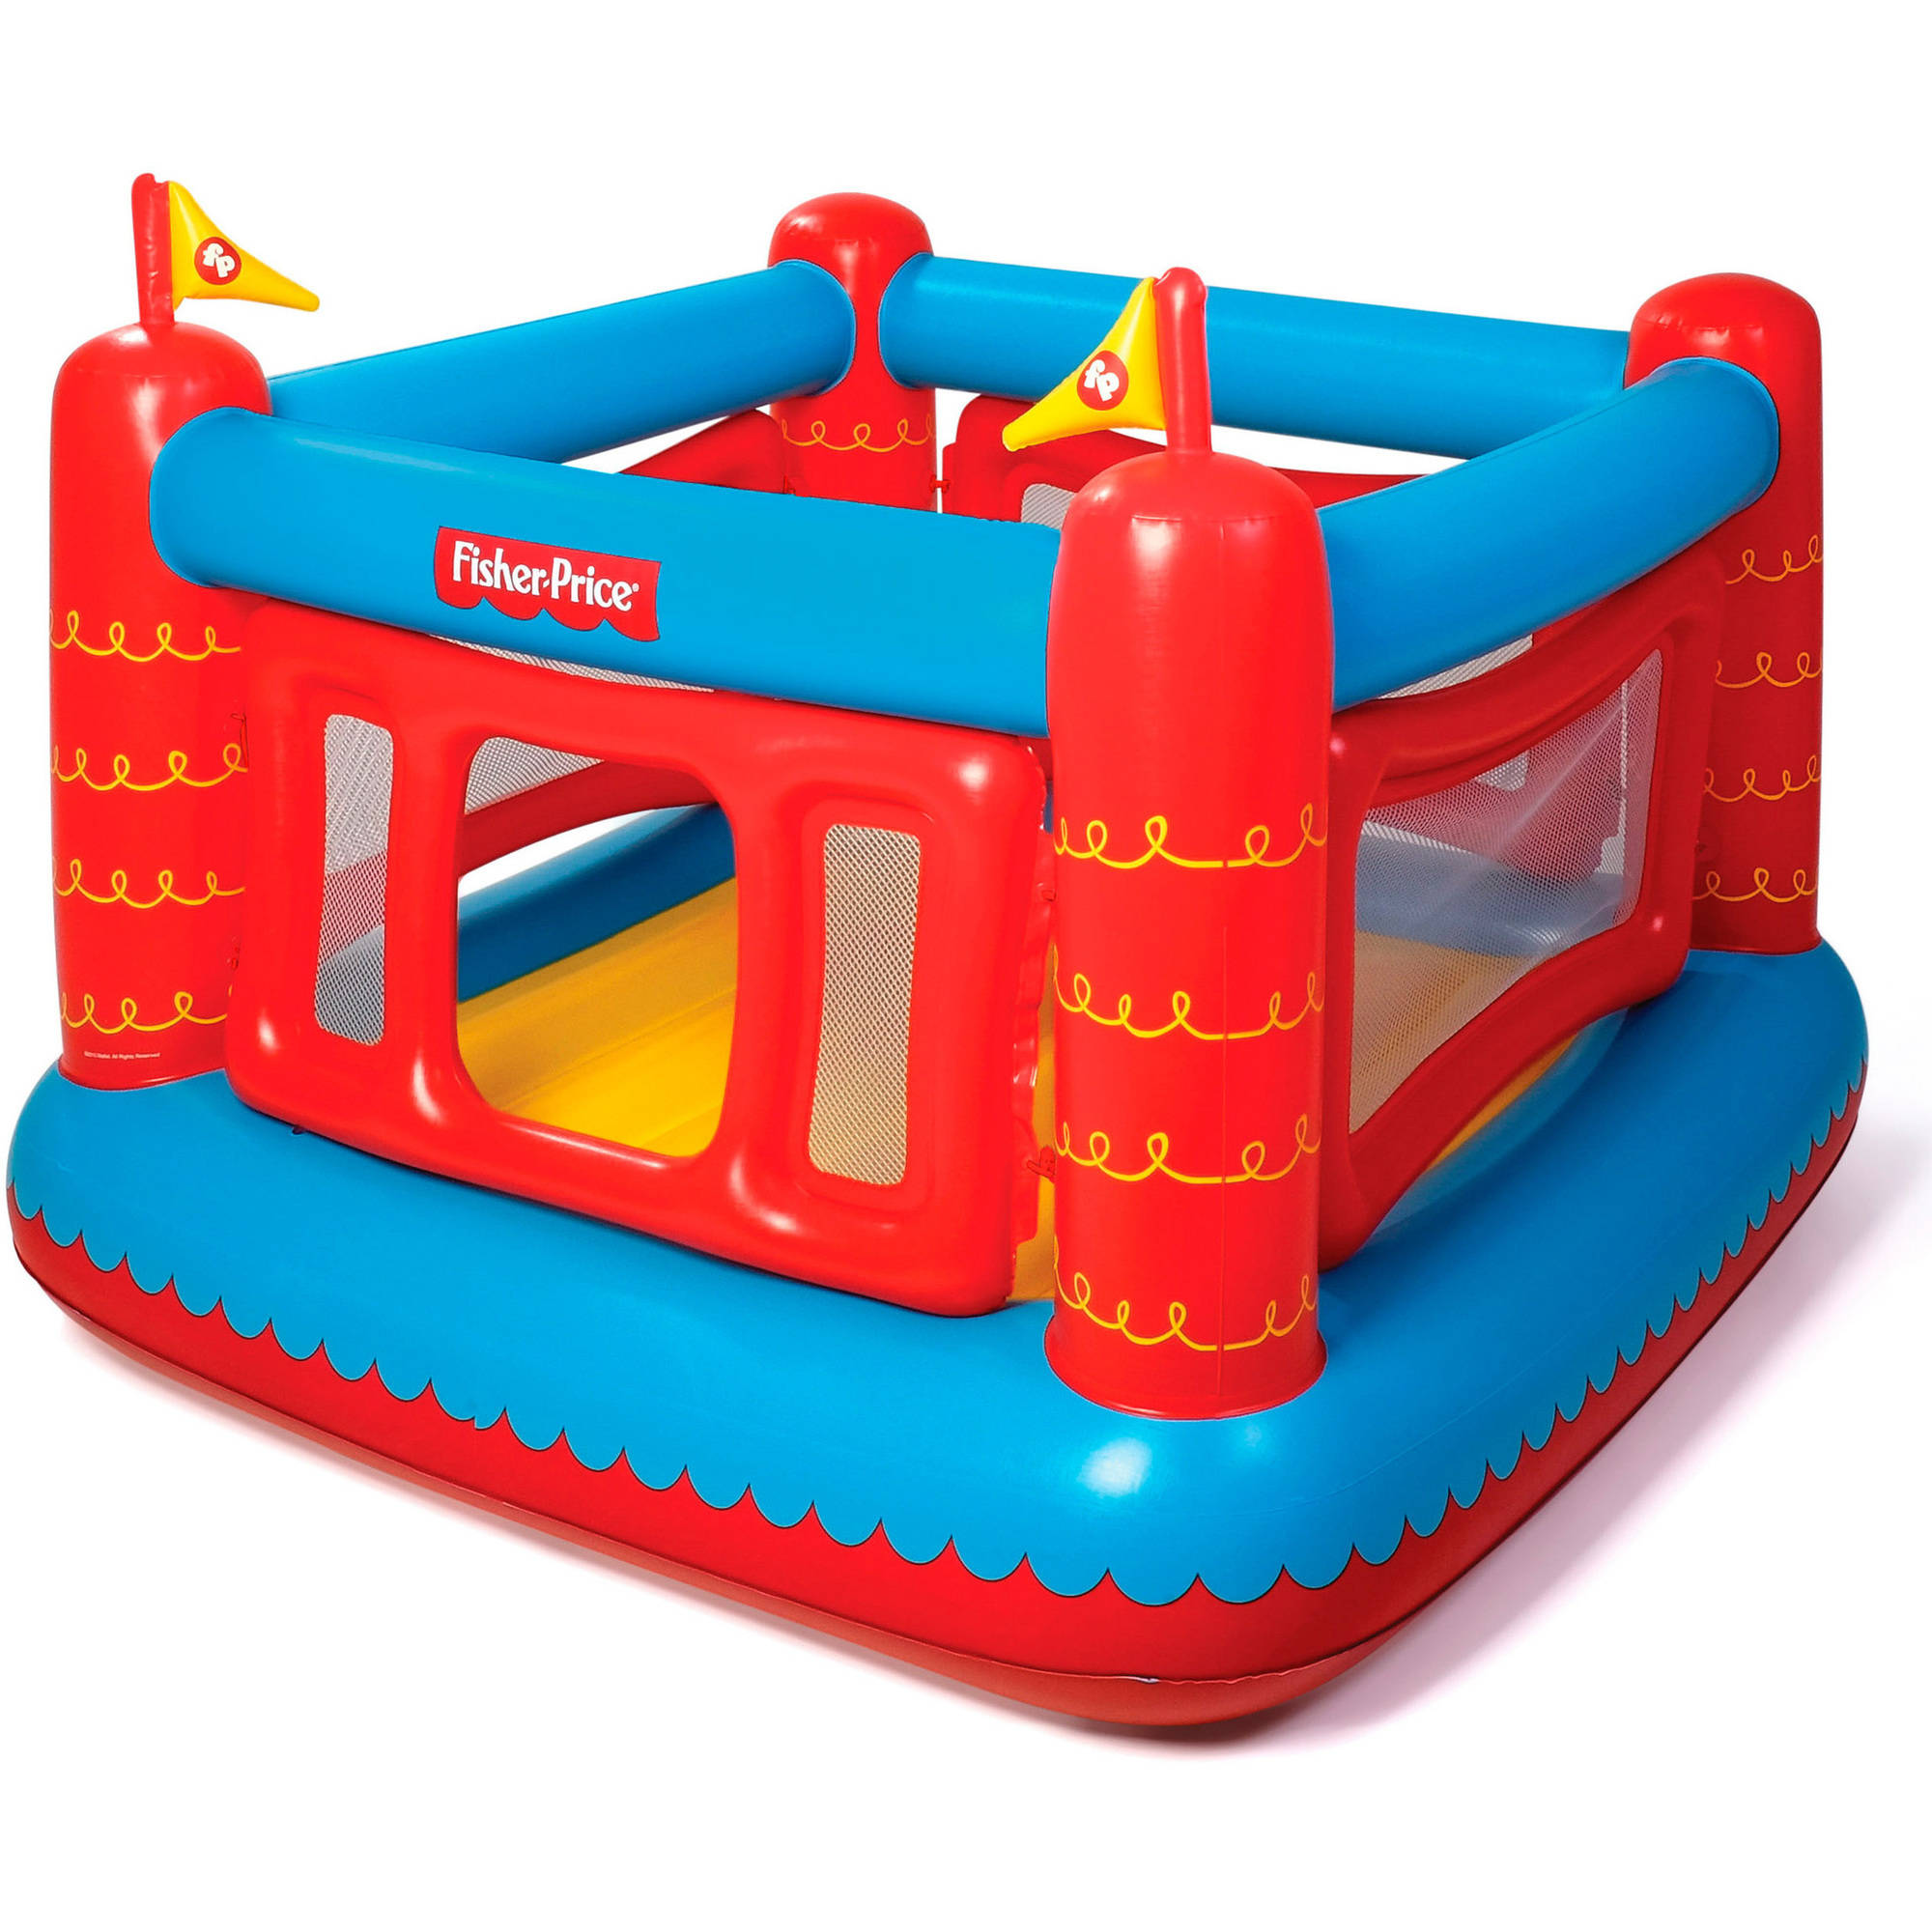 Bestway Fisher Price Bouncetastic Bouncer by Bestway